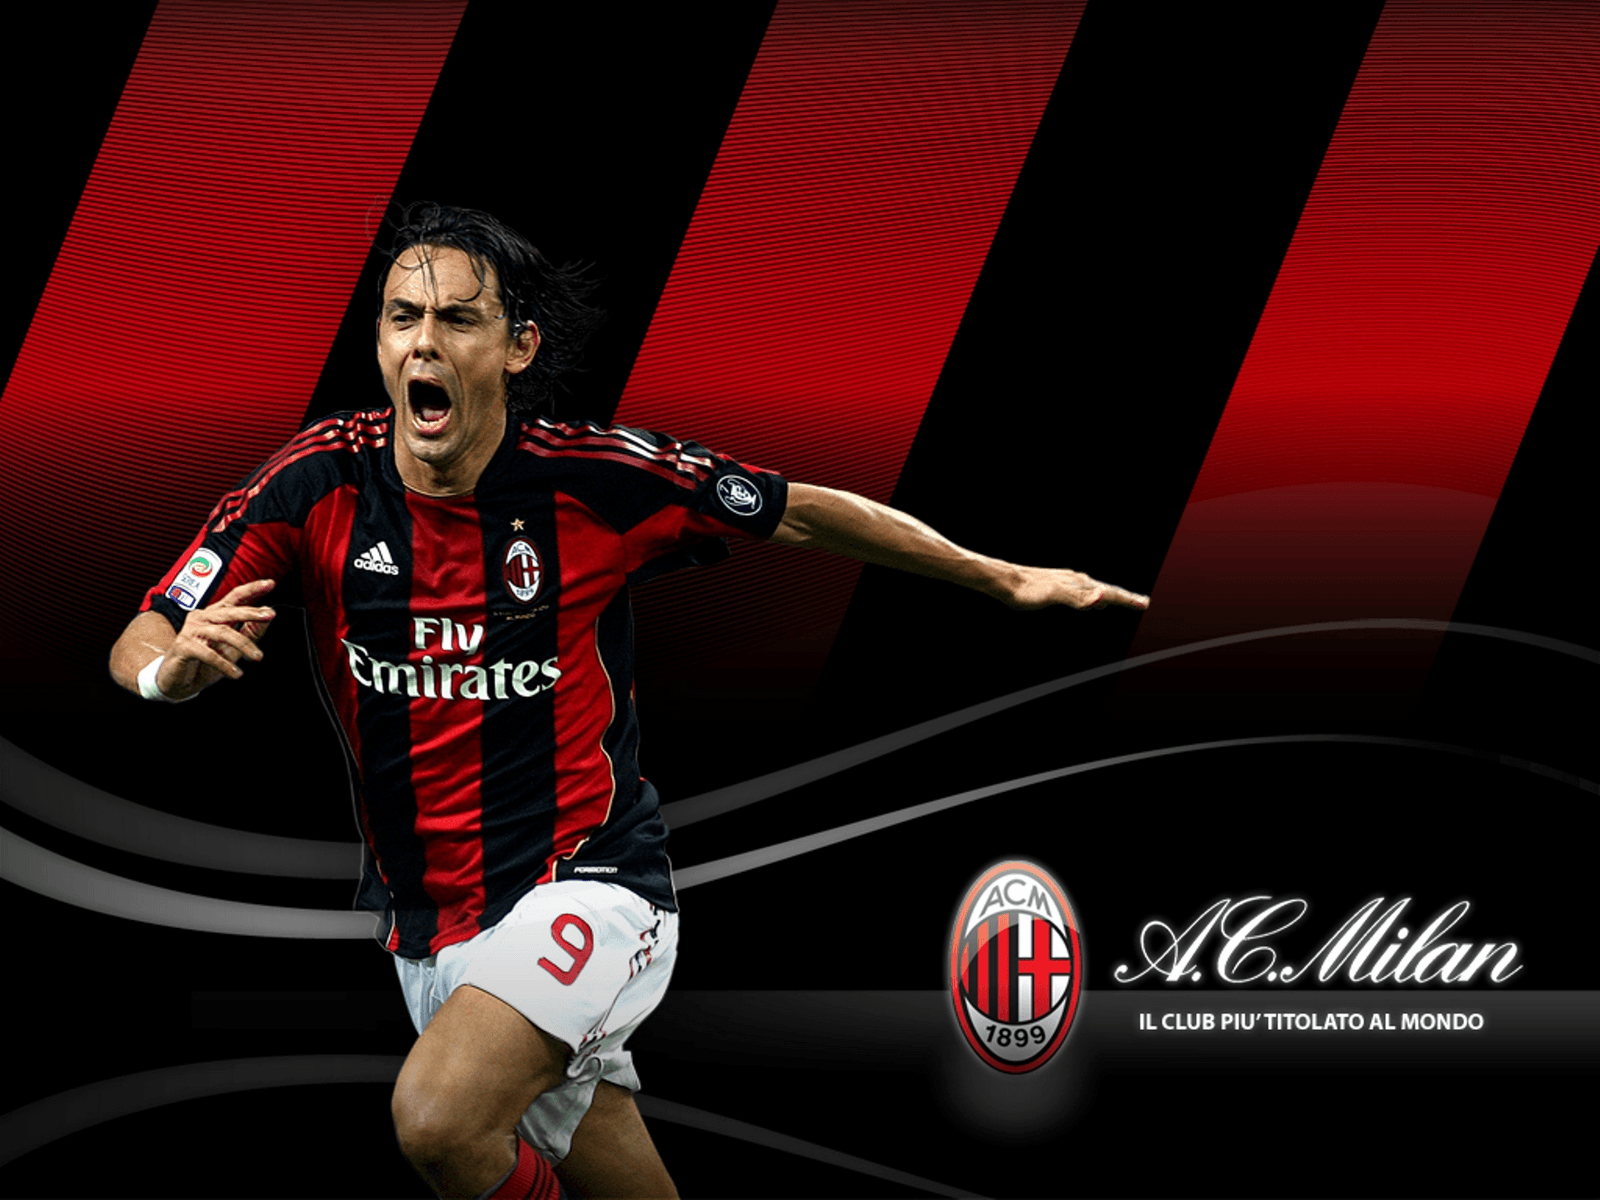 Filippo Inzaghi Ac Milan Background: download this wallpaper ...